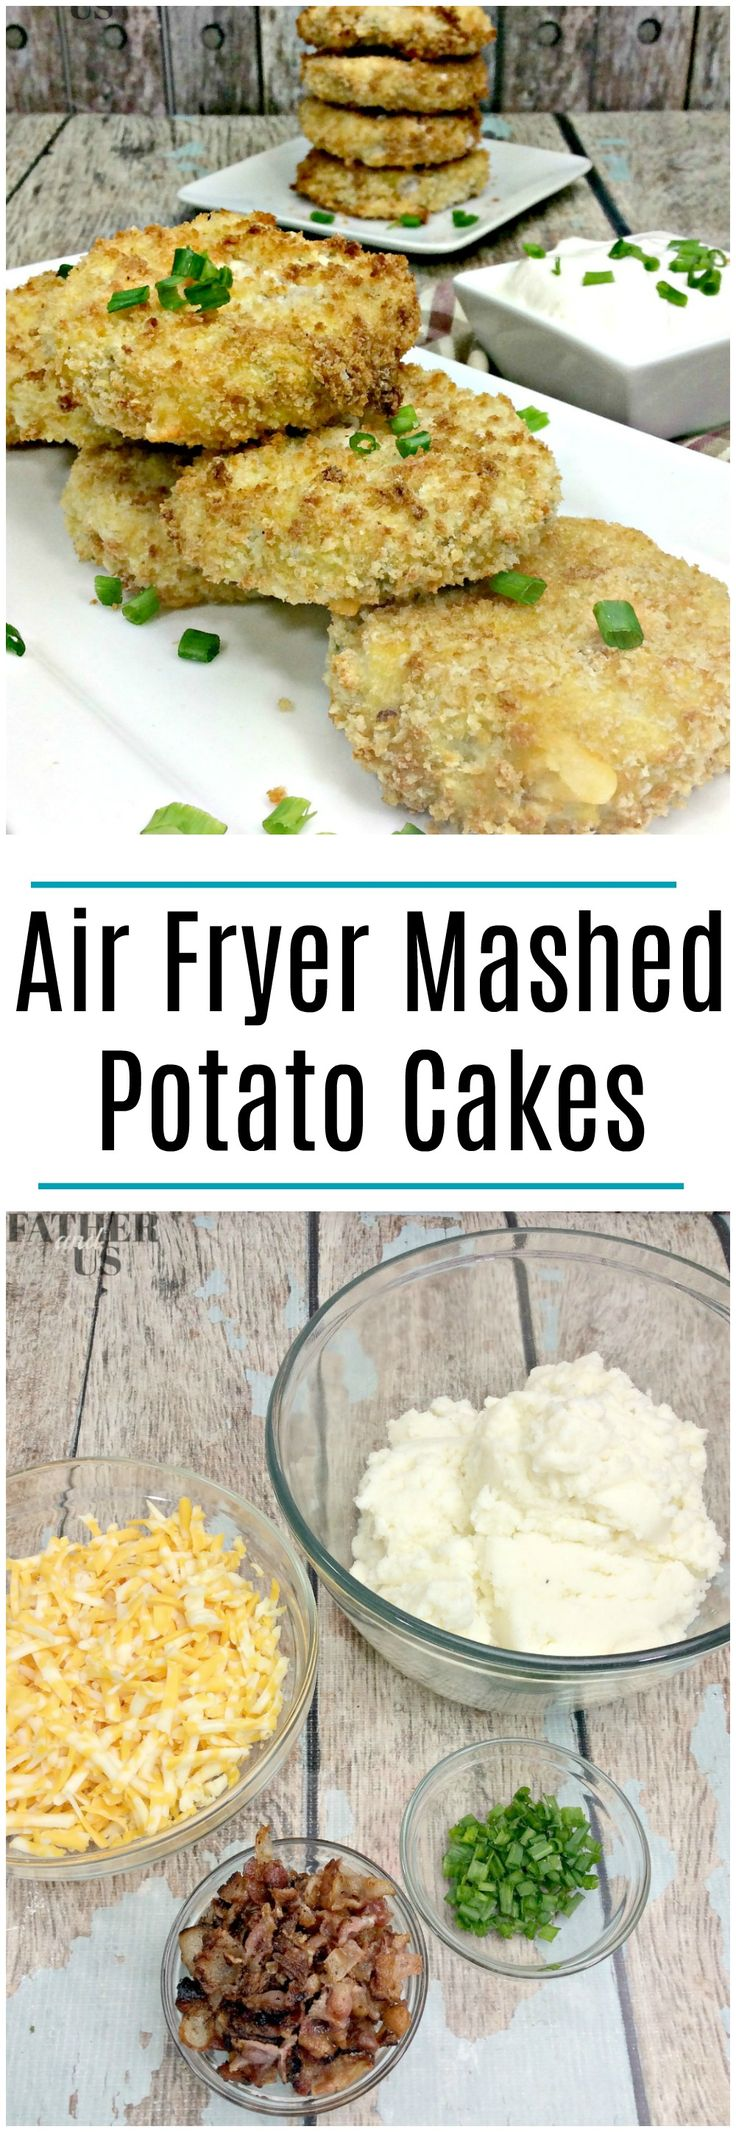 Loaded Mashed Potato Cakes-An Easy Air Fryer Recipe These yummy mashed potato cakes are the perfect appetizer for your next party.  They are east to make, easy to eat and look great on an appetizer platter.  They are crispy on the outside with a rich, warm potato filling.  They are loaded with all the goodies …